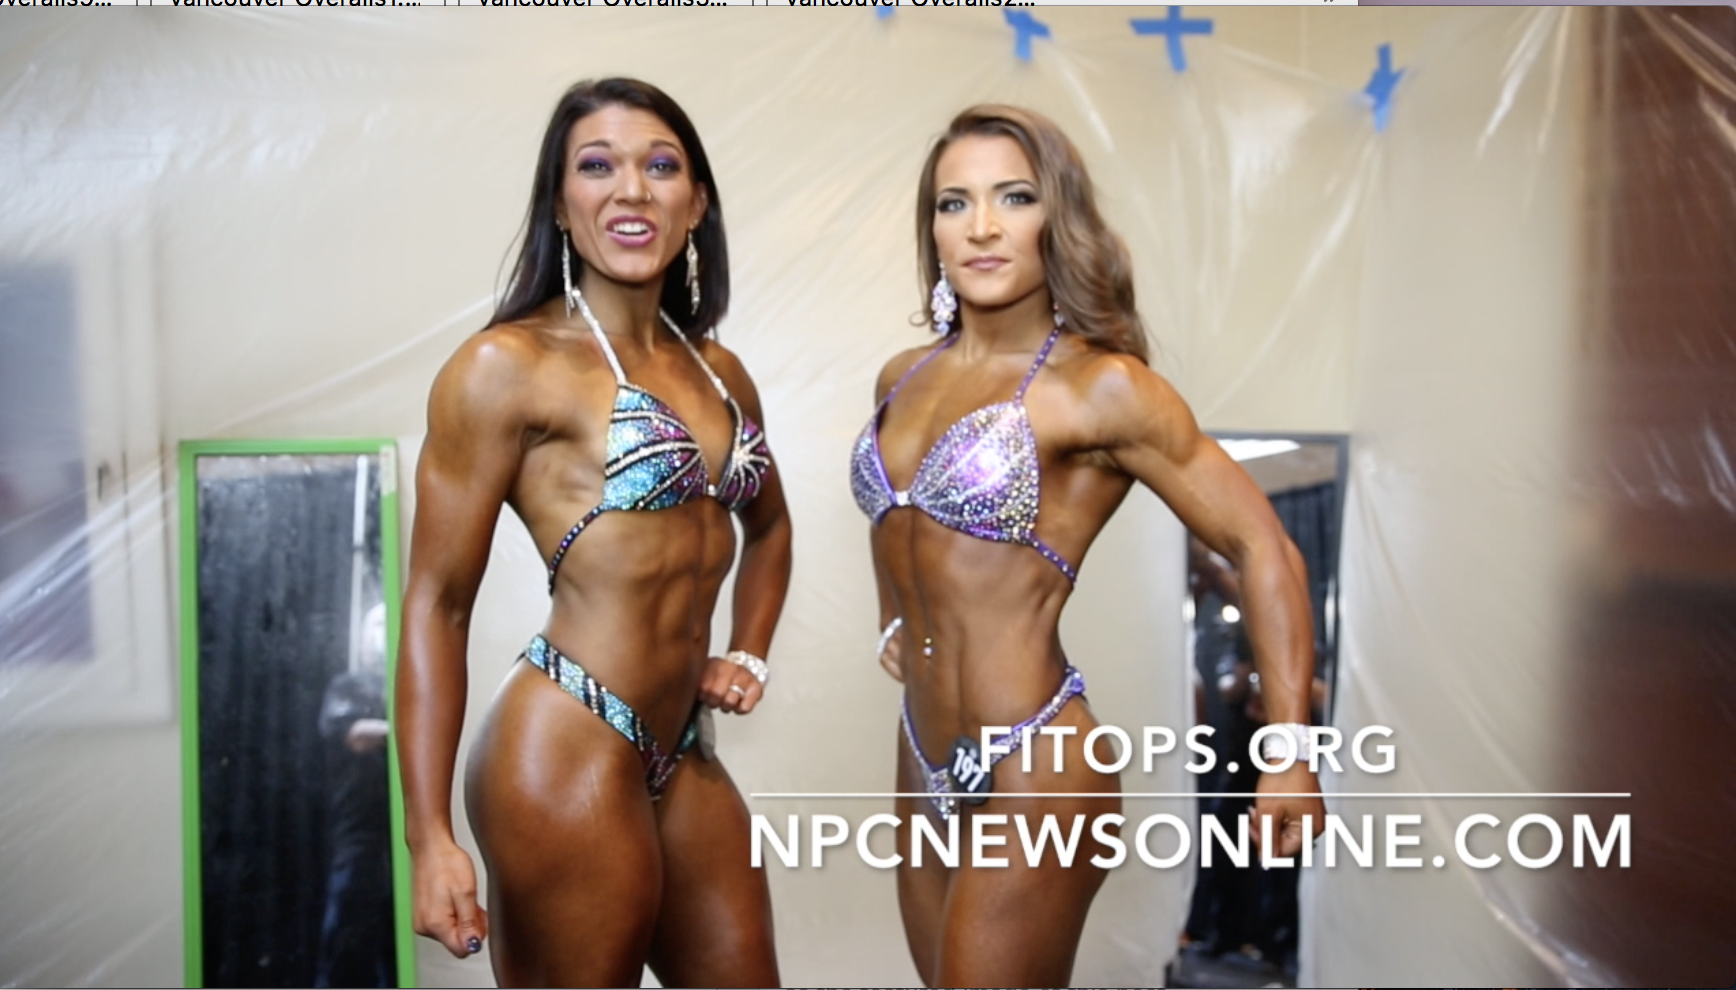 2017 NPC EASTERN USA WOMEN'S FIGURE BACKSTAGE VIDEO PART 1